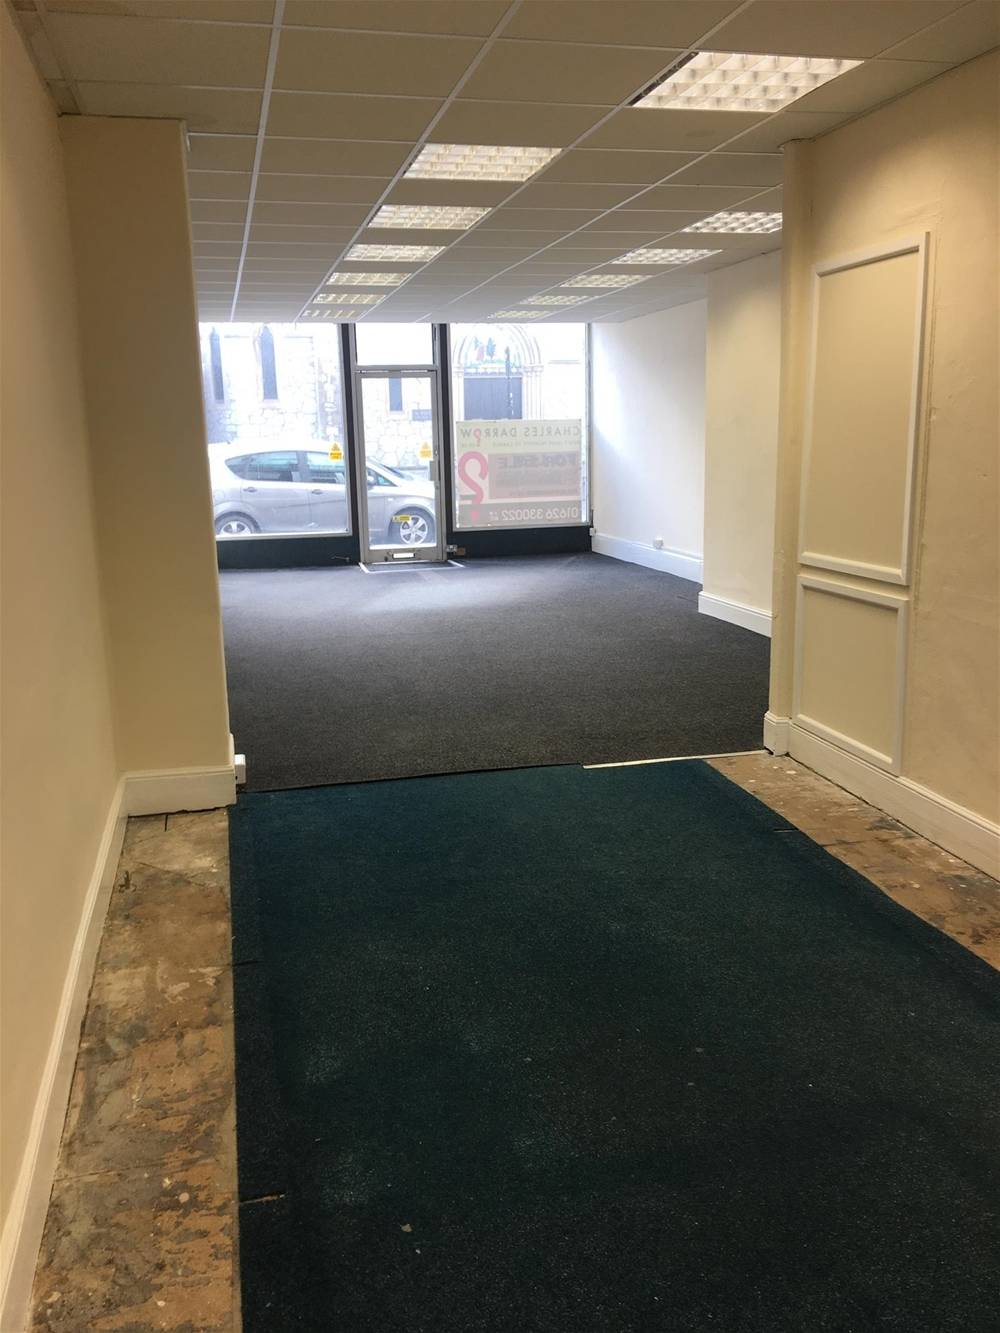 Town Centre Retail Premises For Sale in Newton Abbot - Image 2